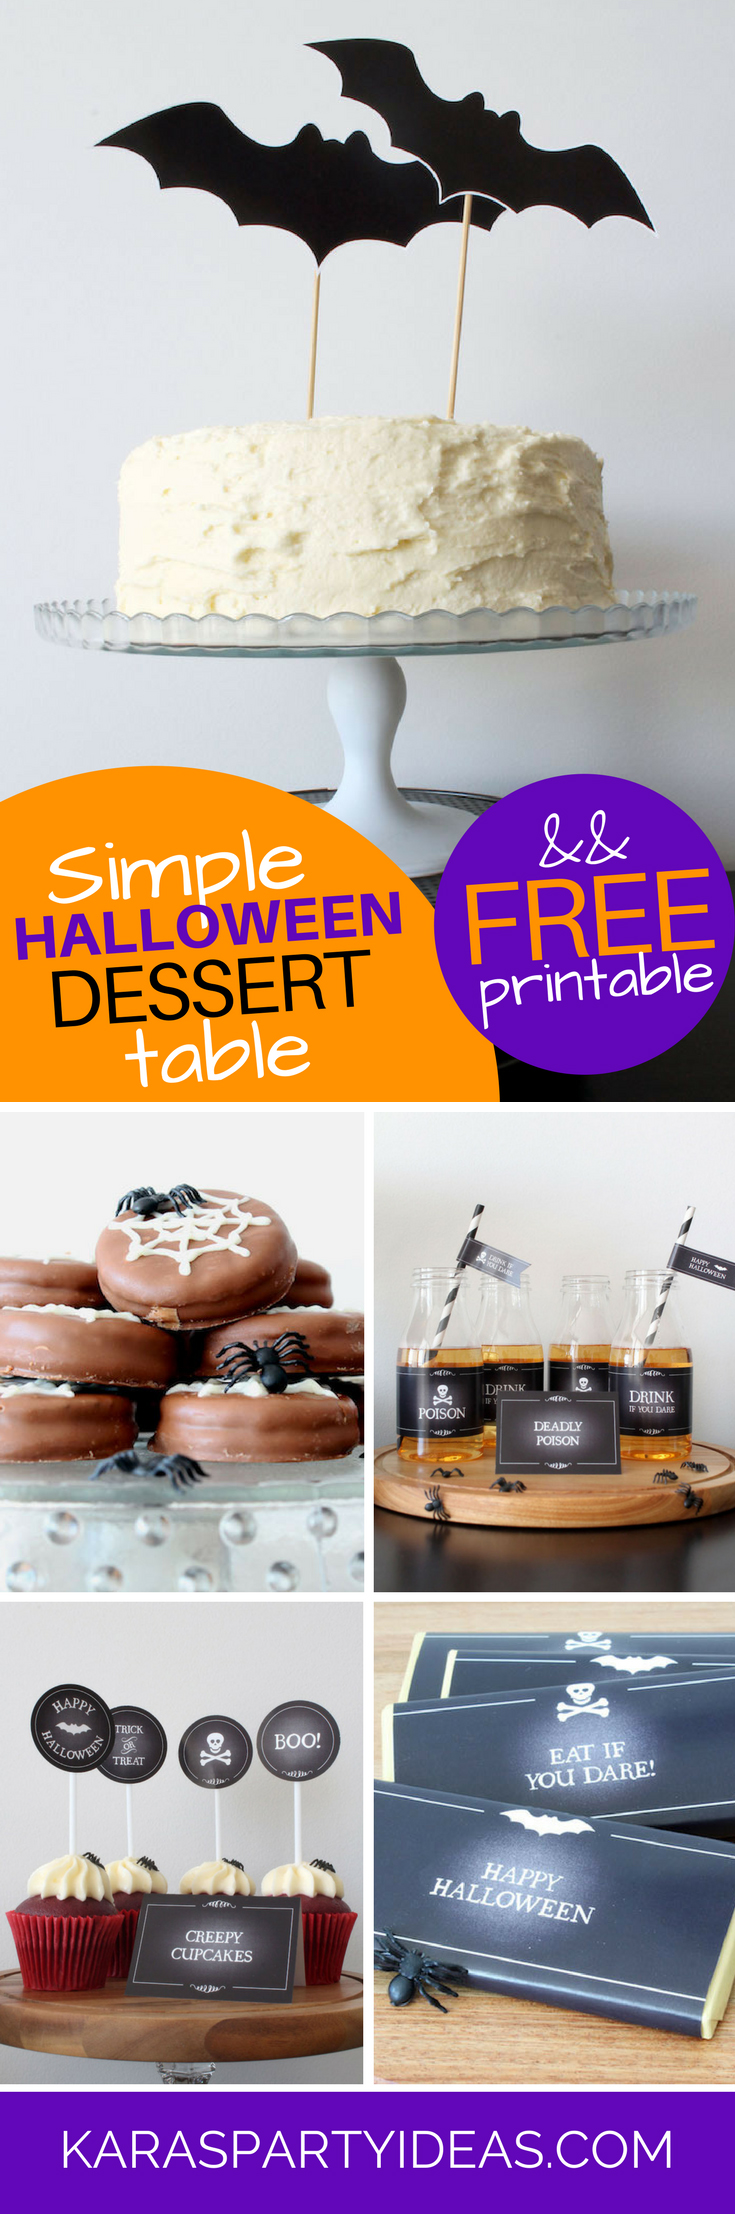 Simple Halloween Dessert Table plus Free Printable via Kara's Party Ideas - KarasPartyIdeas.com